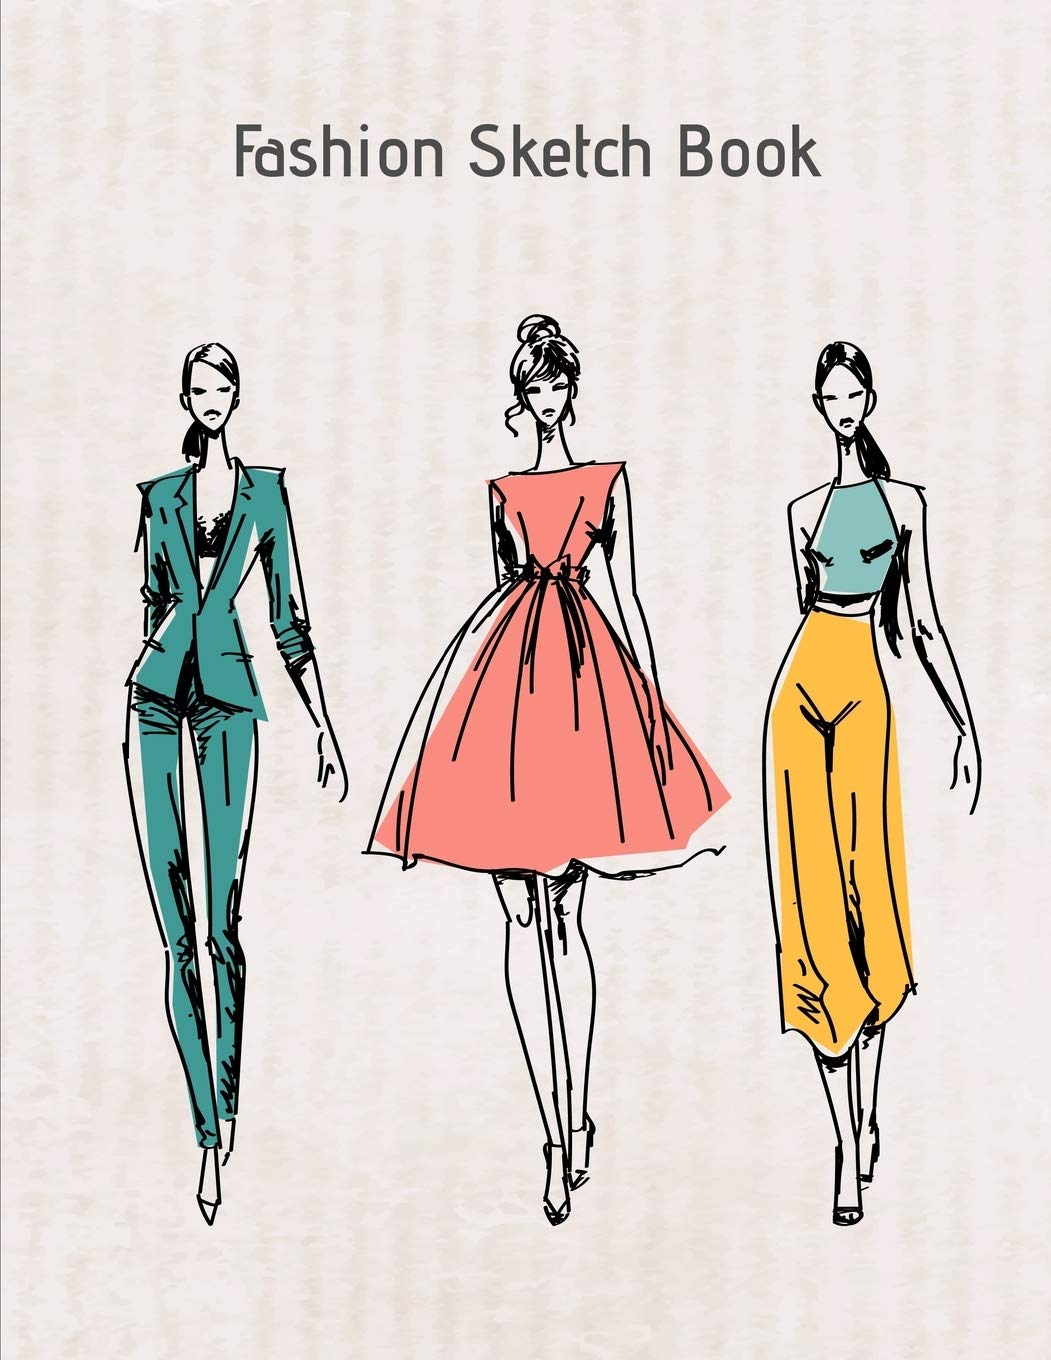 Amazon Com Fashion Sketch Book My Fashion Design Illustration Workbook Croquis Templates And Model Draft Sketchpad 8 5x11 Inches 9781709128271 Lim Fashion Creative Books